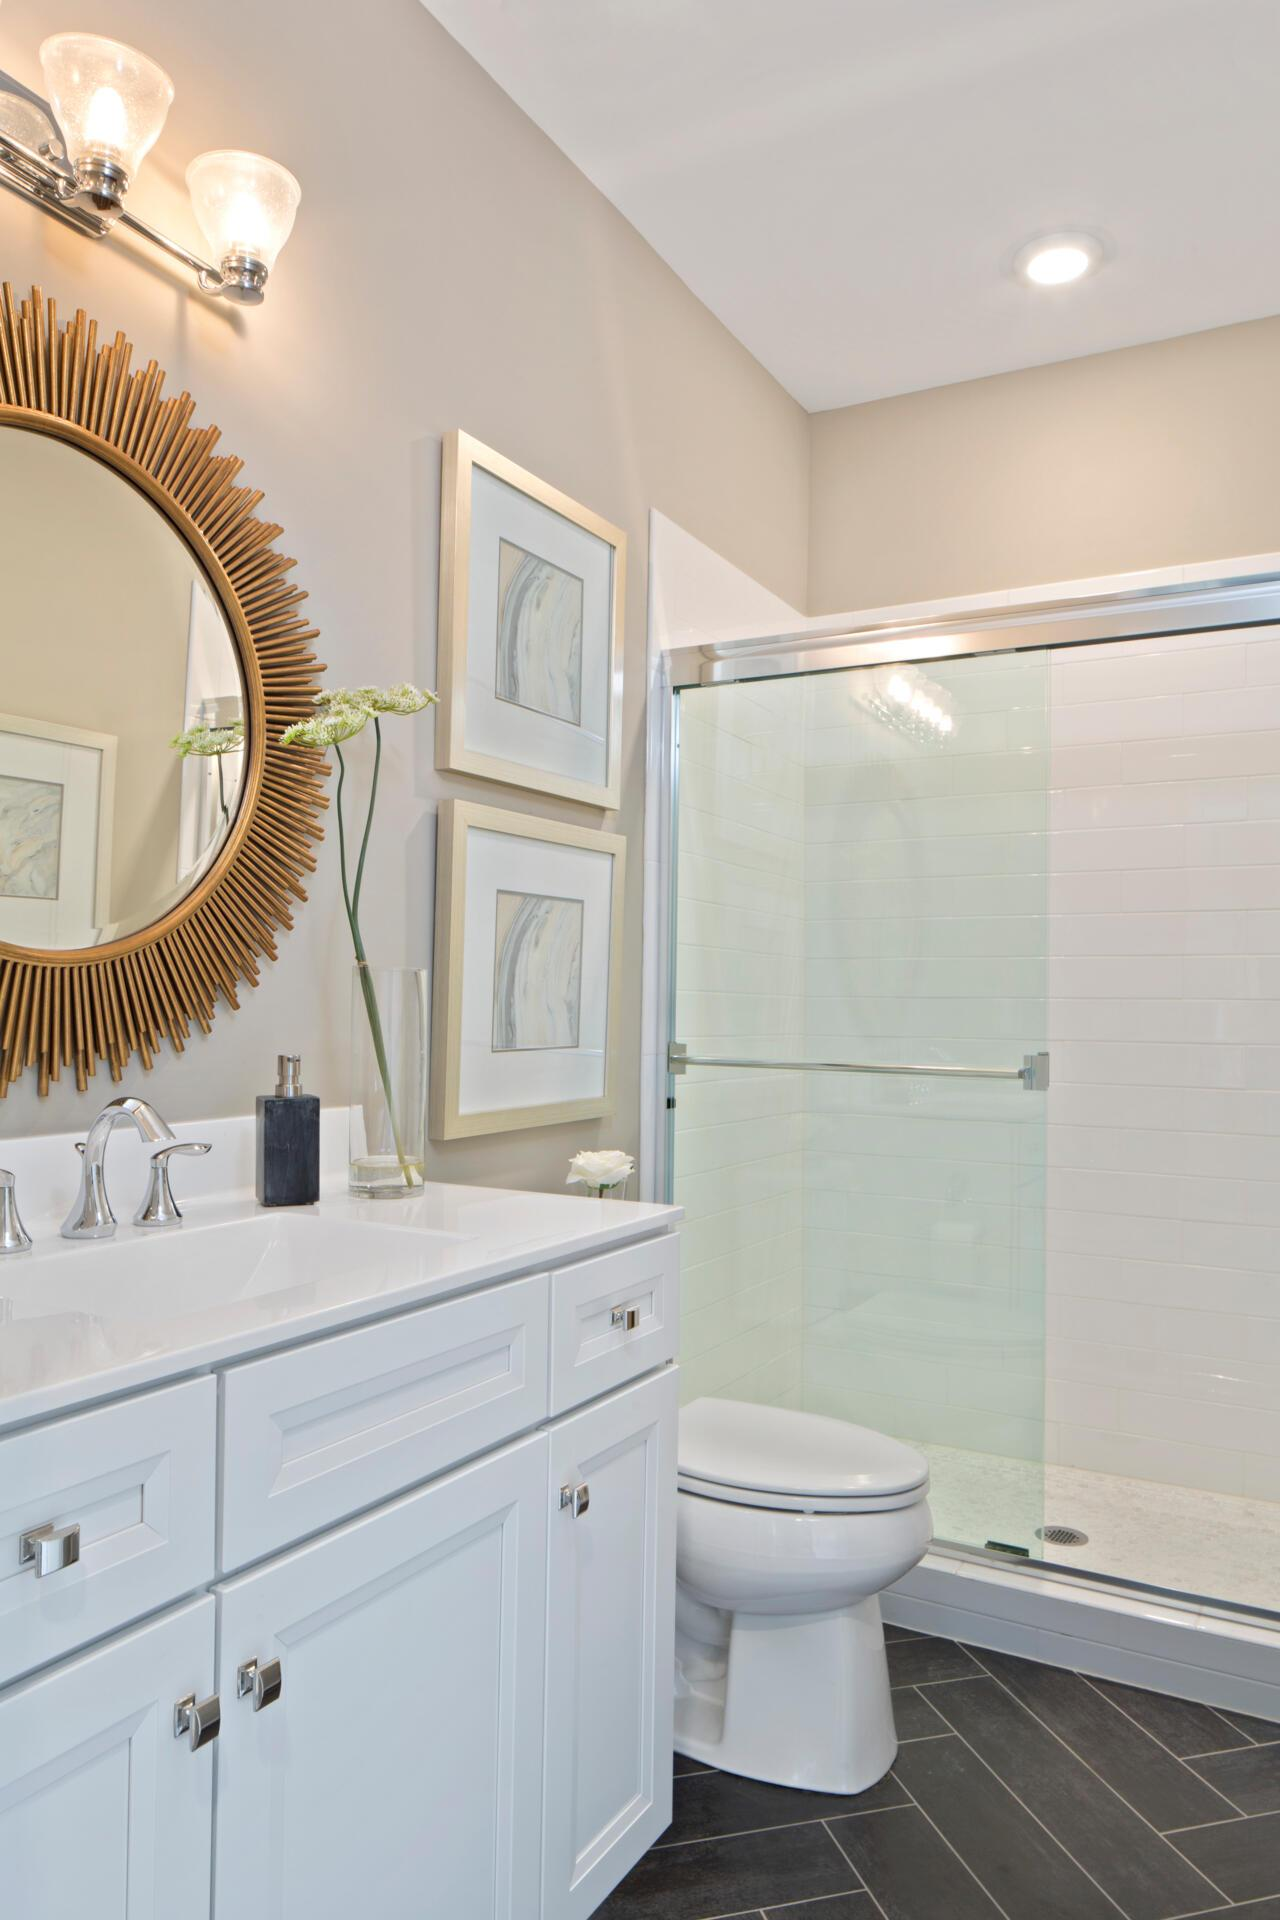 Bathroom featured in the Ash Lawn By Drees Homes in Cleveland, OH